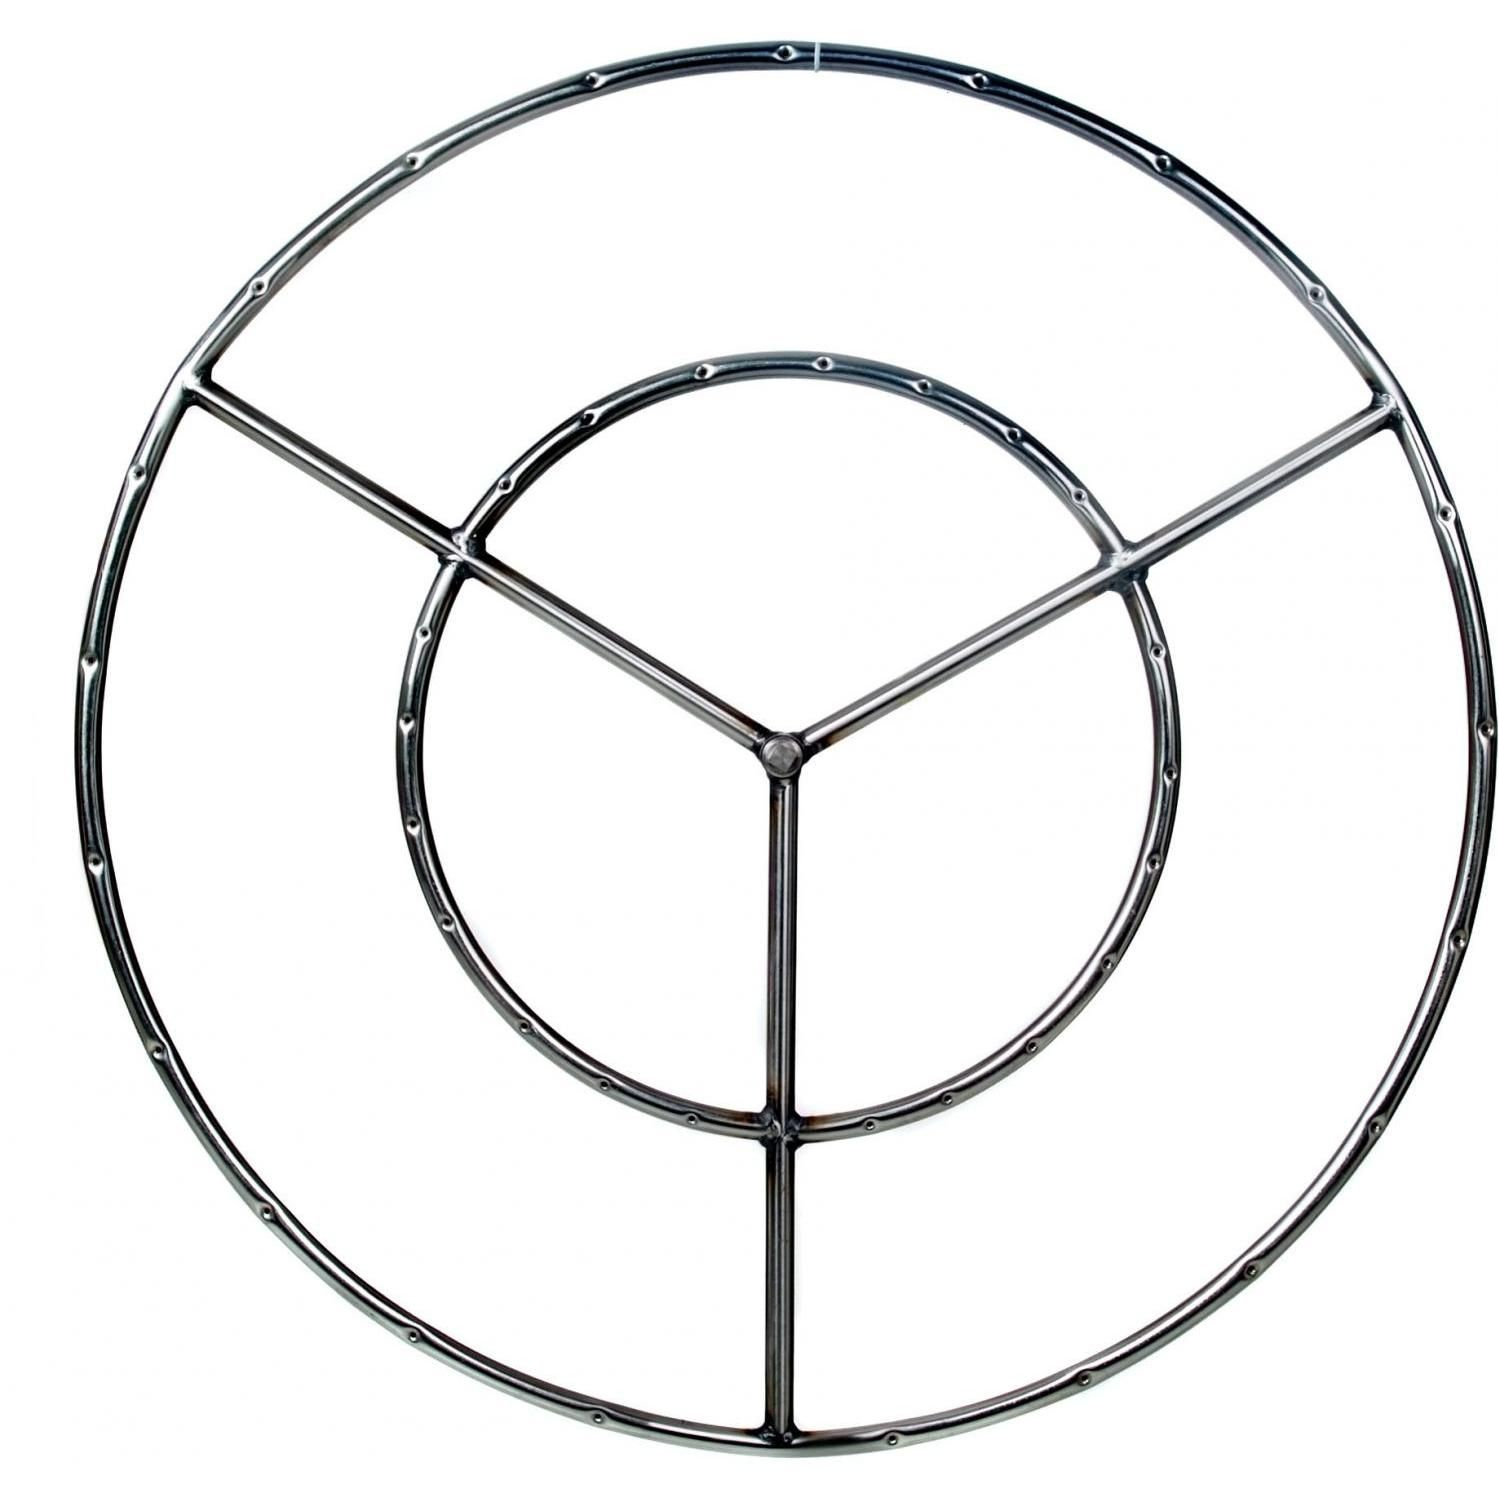 Alpine Flame 36 Inch Stainless Round Double Propane Fire Pit Ring Burner Natural Gas Fire Pit Fire Pit Ring Propane Fire Pit